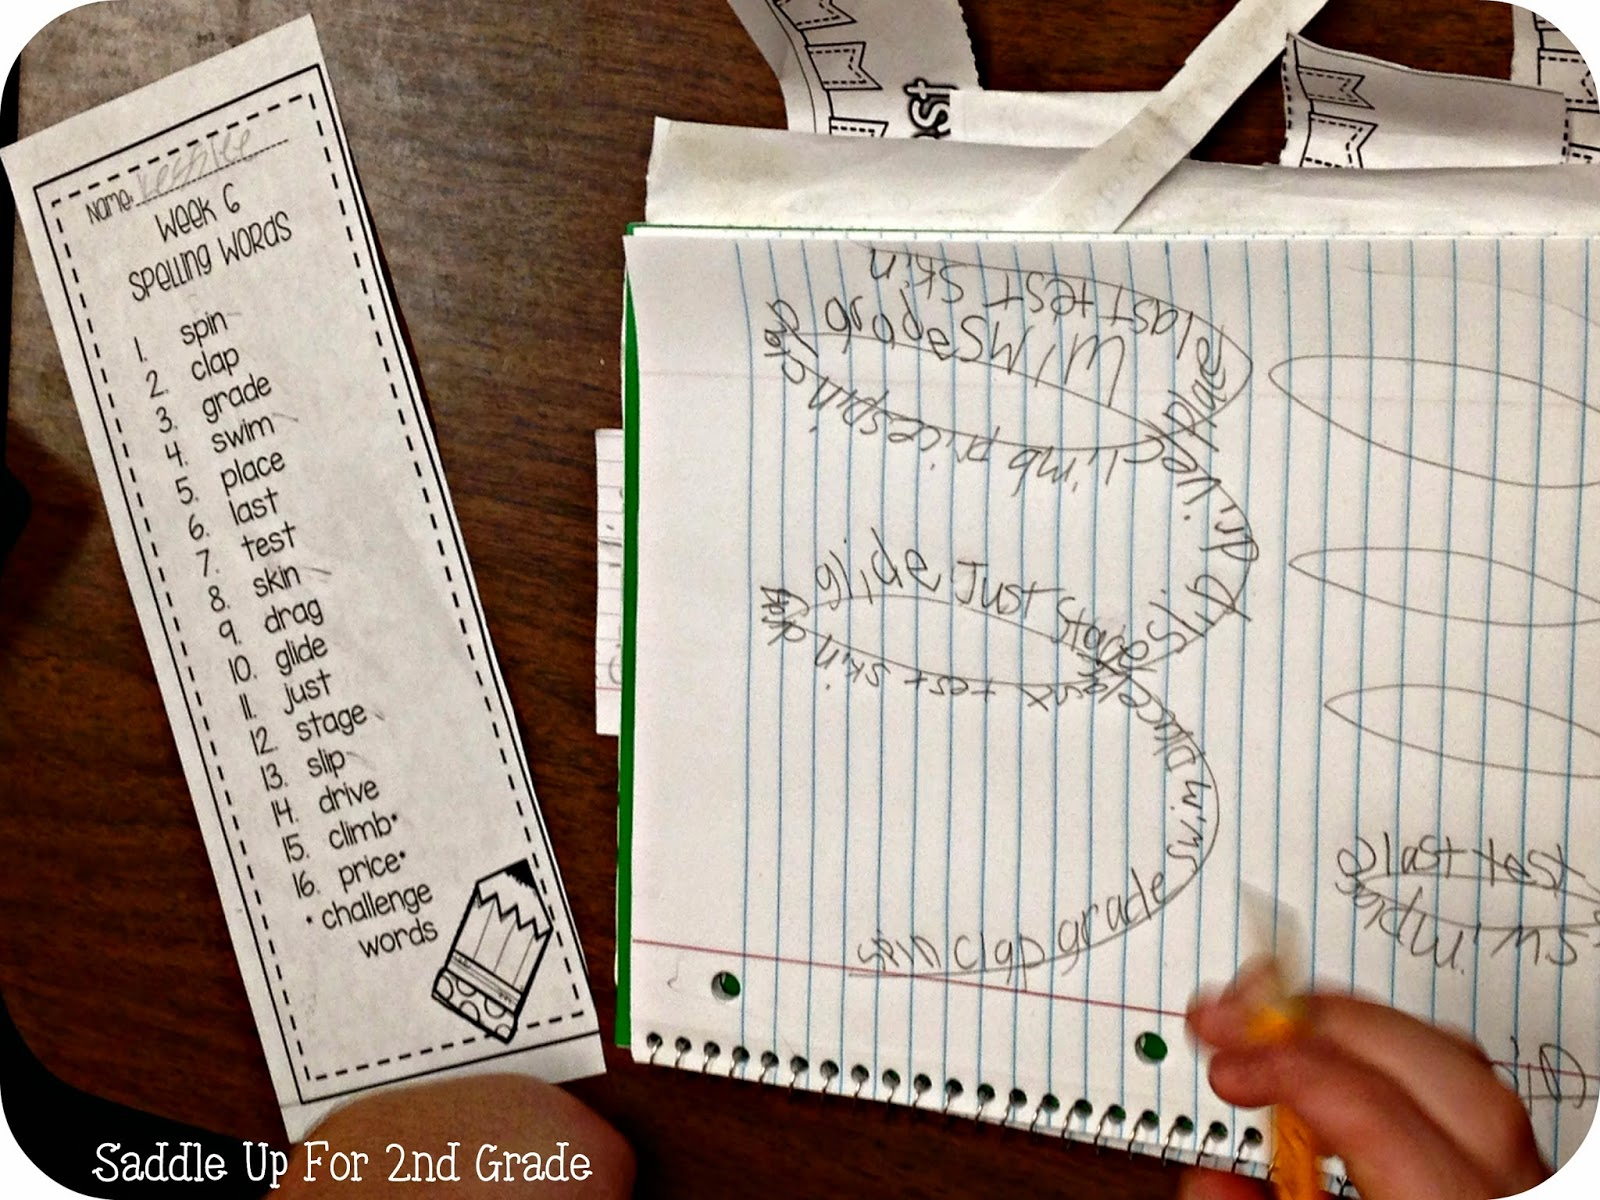 Squiggle Spelling by Saddle Up For 2nd Grade